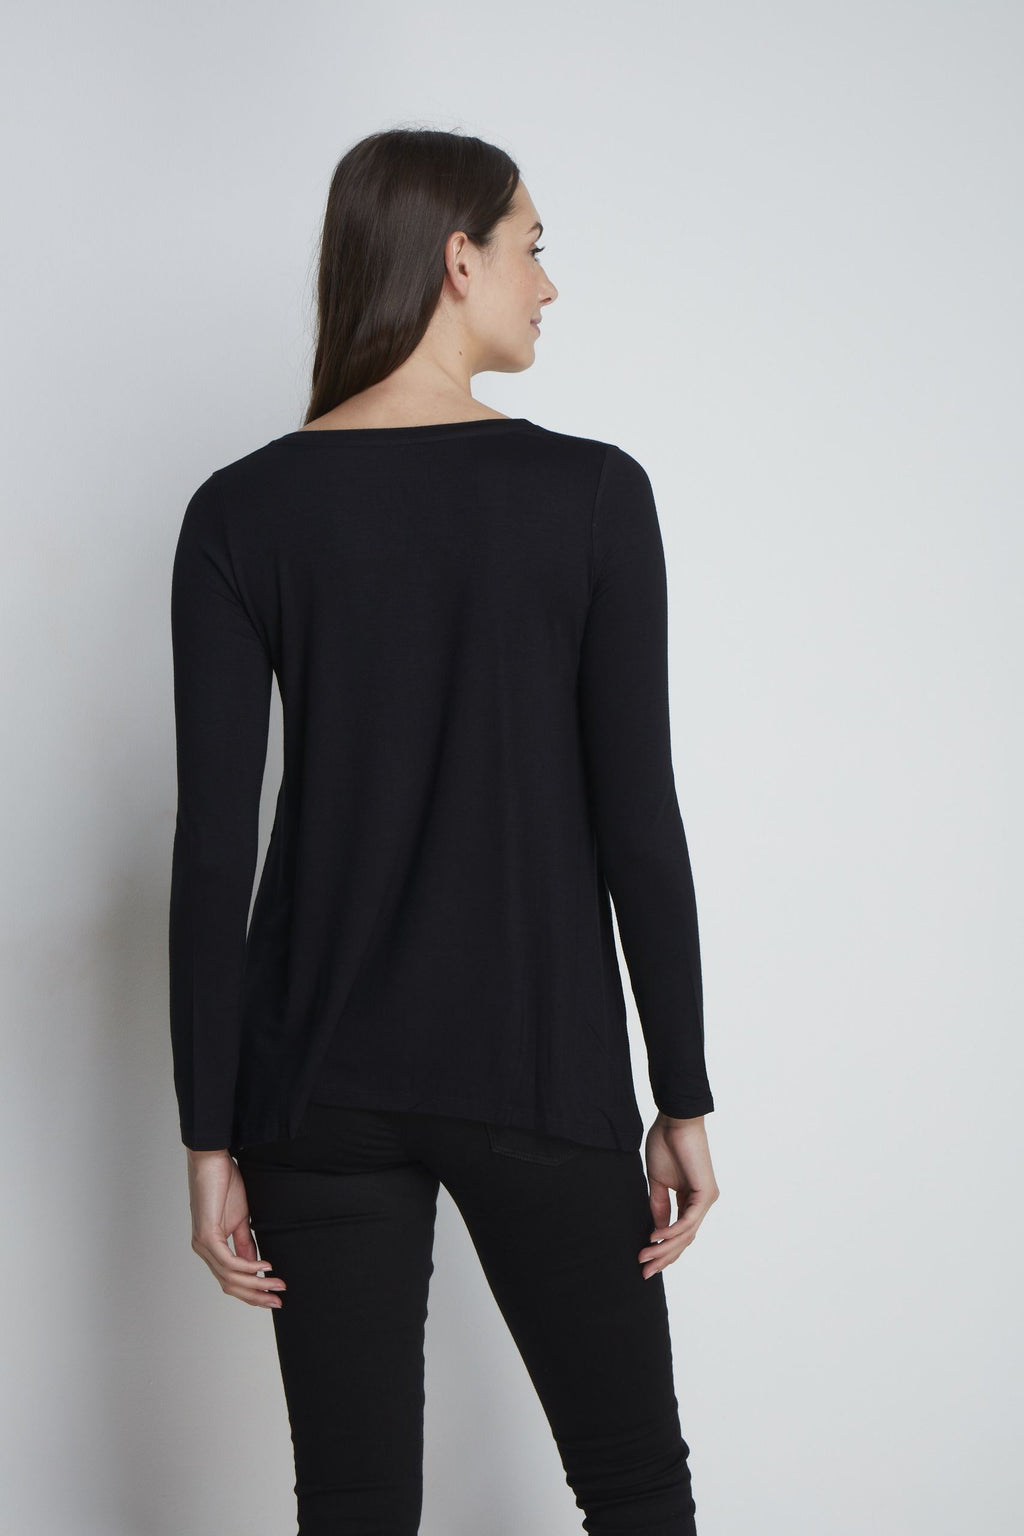 A-line Micro Modal T-shirt Long Sleeve T-shirt Lavender Hill Clothing